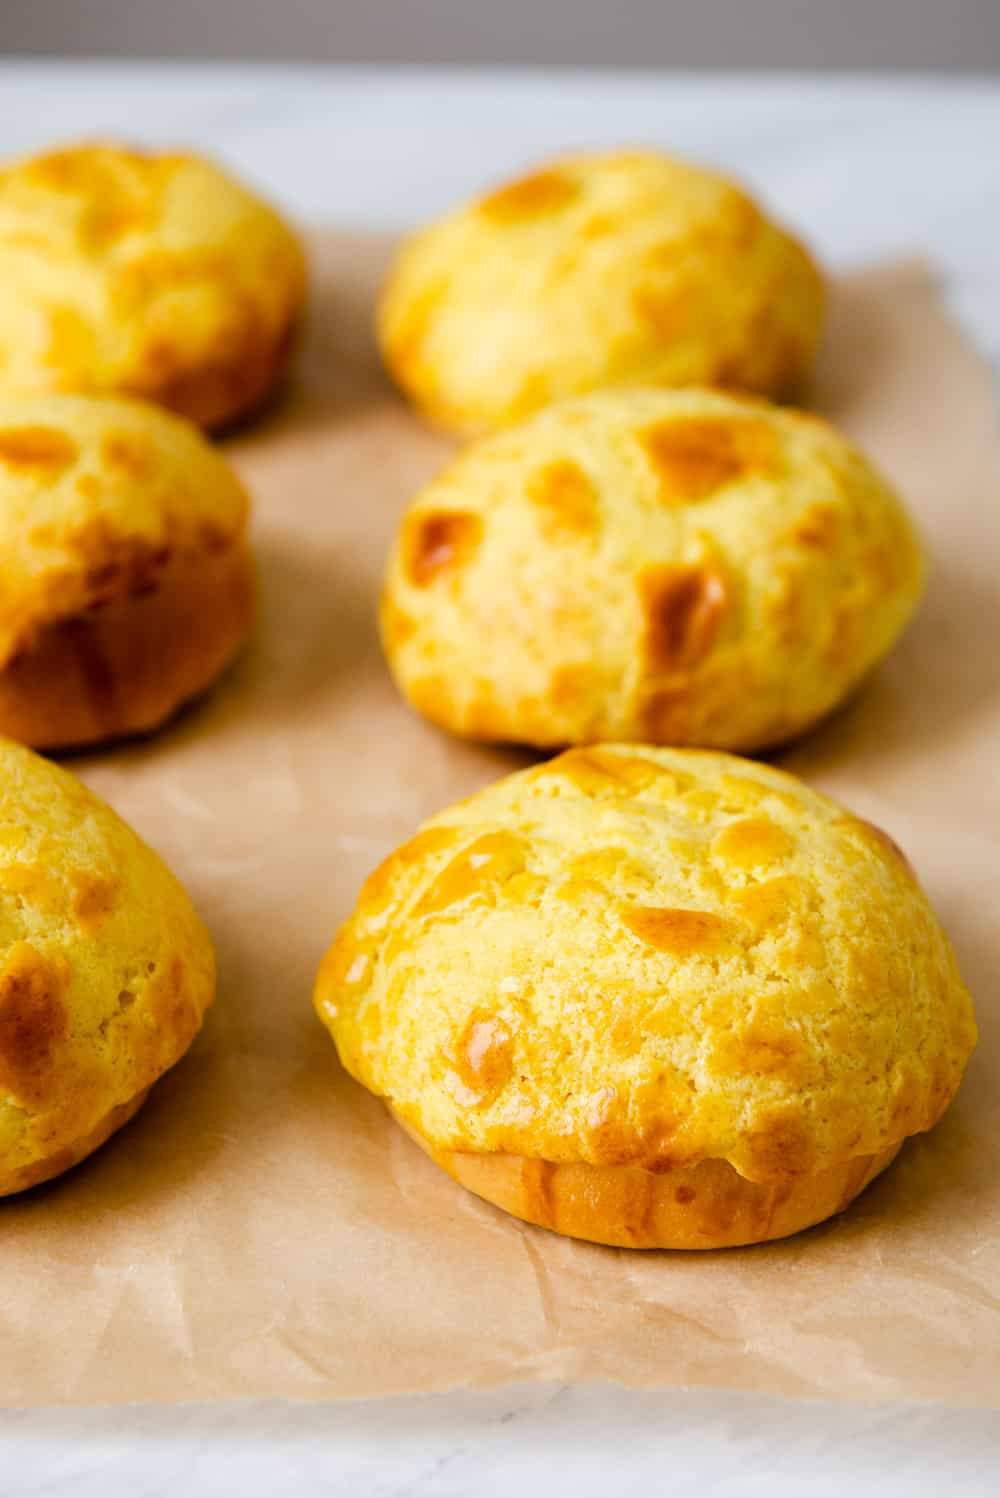 How to Make Pineapple Buns